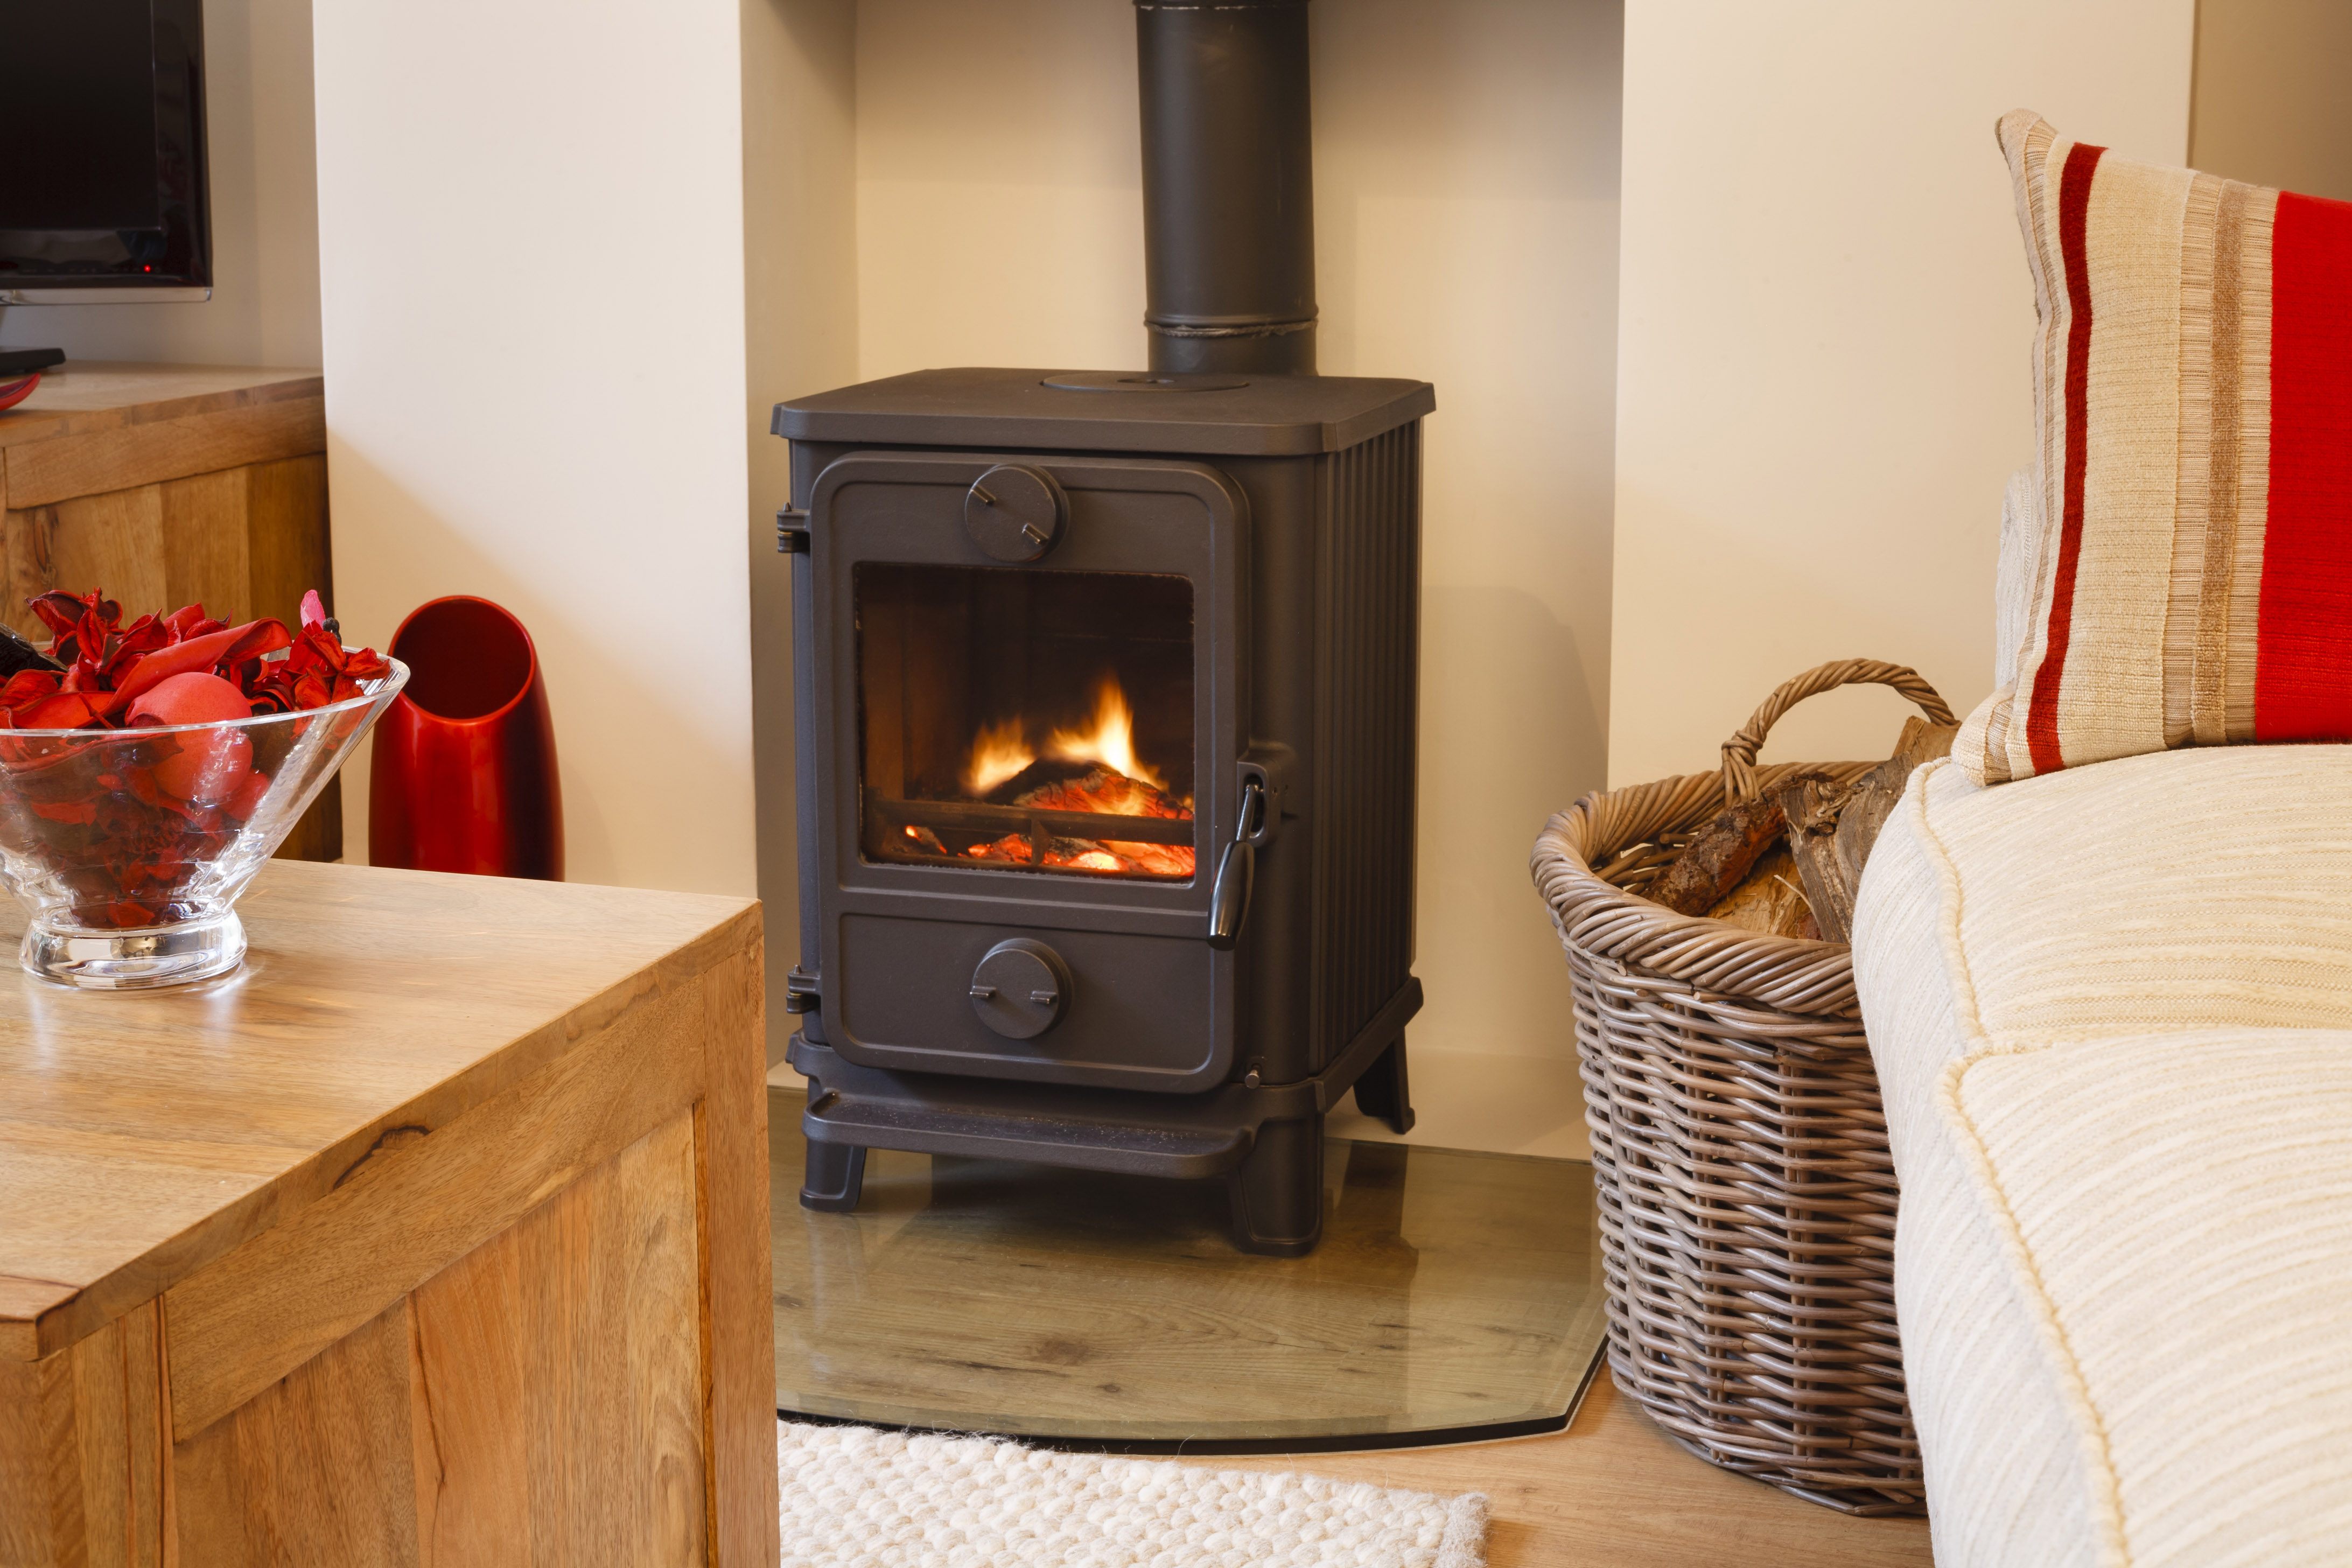 How To Guide For Cast Iron Wood Stove Restoration Home Guides Sf